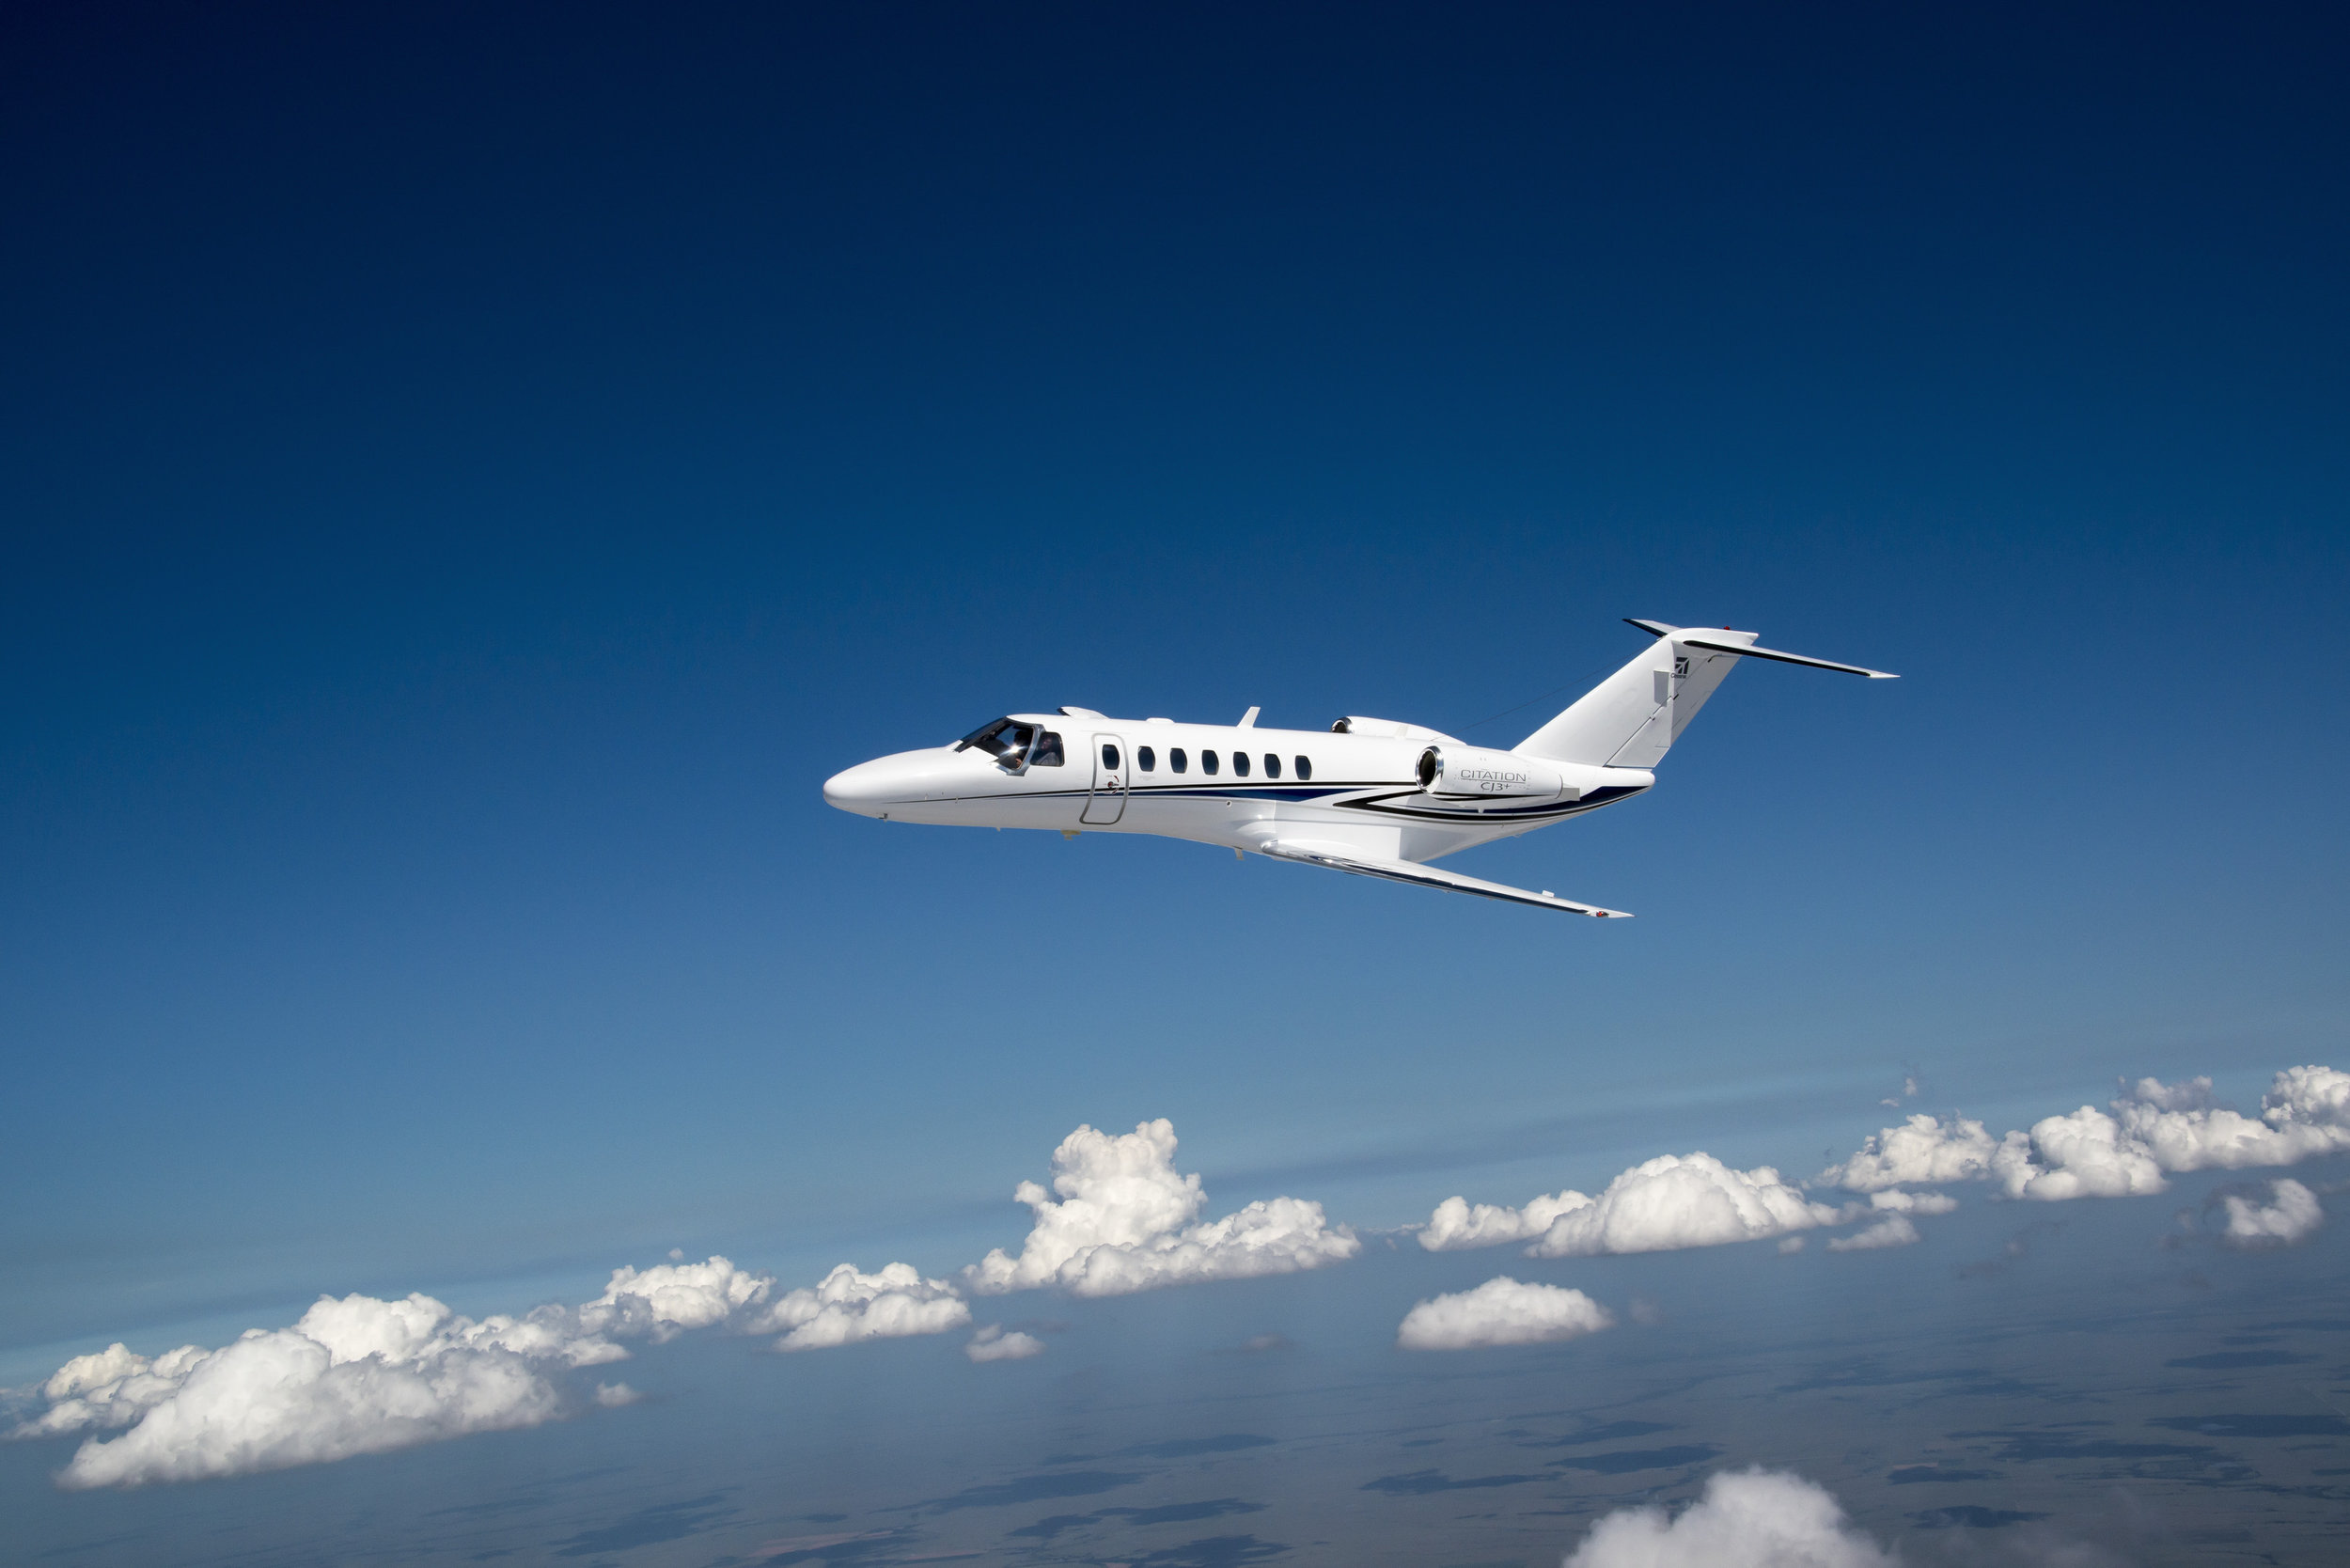 Citation_CJ3_Exterior_Legacy_Aviation_Private_Jet_NetJets_jet_charter_TEB_VNY_MIA_PBI_FRG_SFO_FLL_FXE_BED 2.jpg